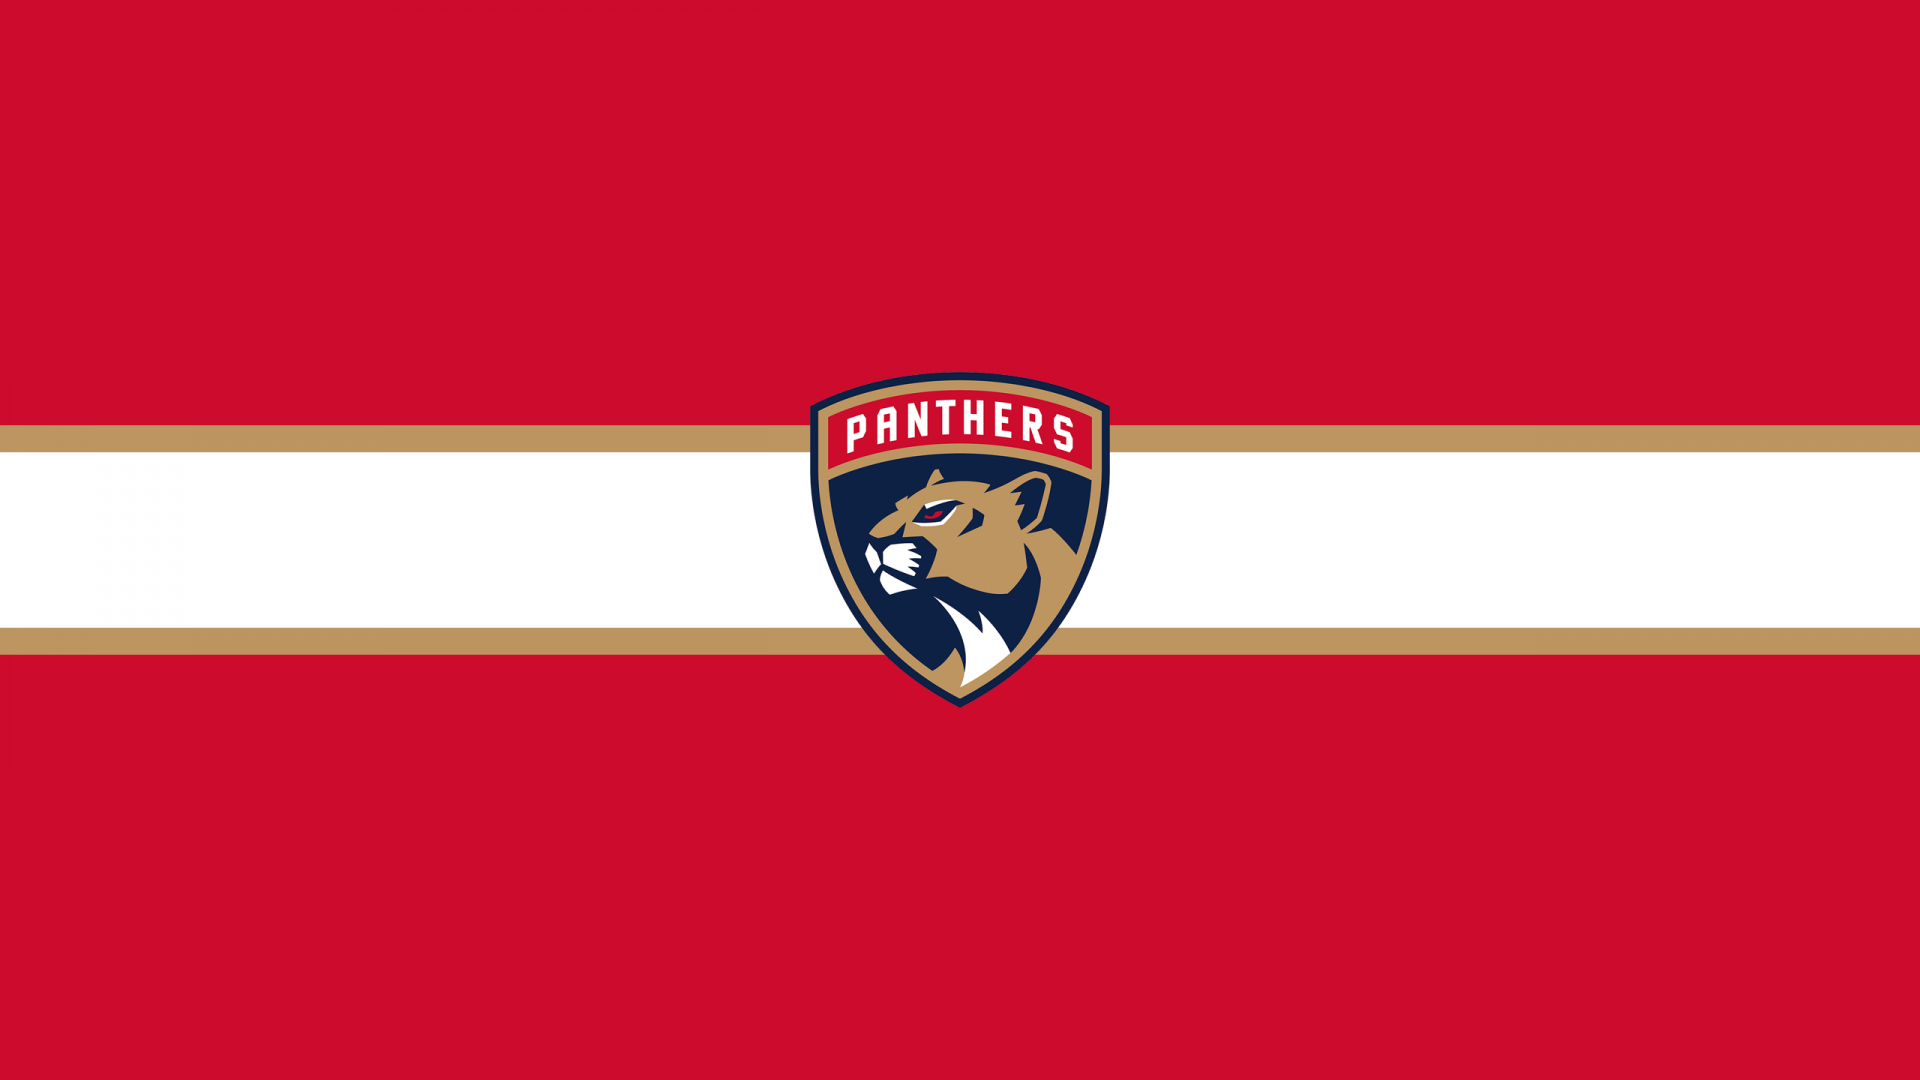 1920x1080 Florida Panthers Wallpaper 2 - 2560 X 1440 | stmed.net